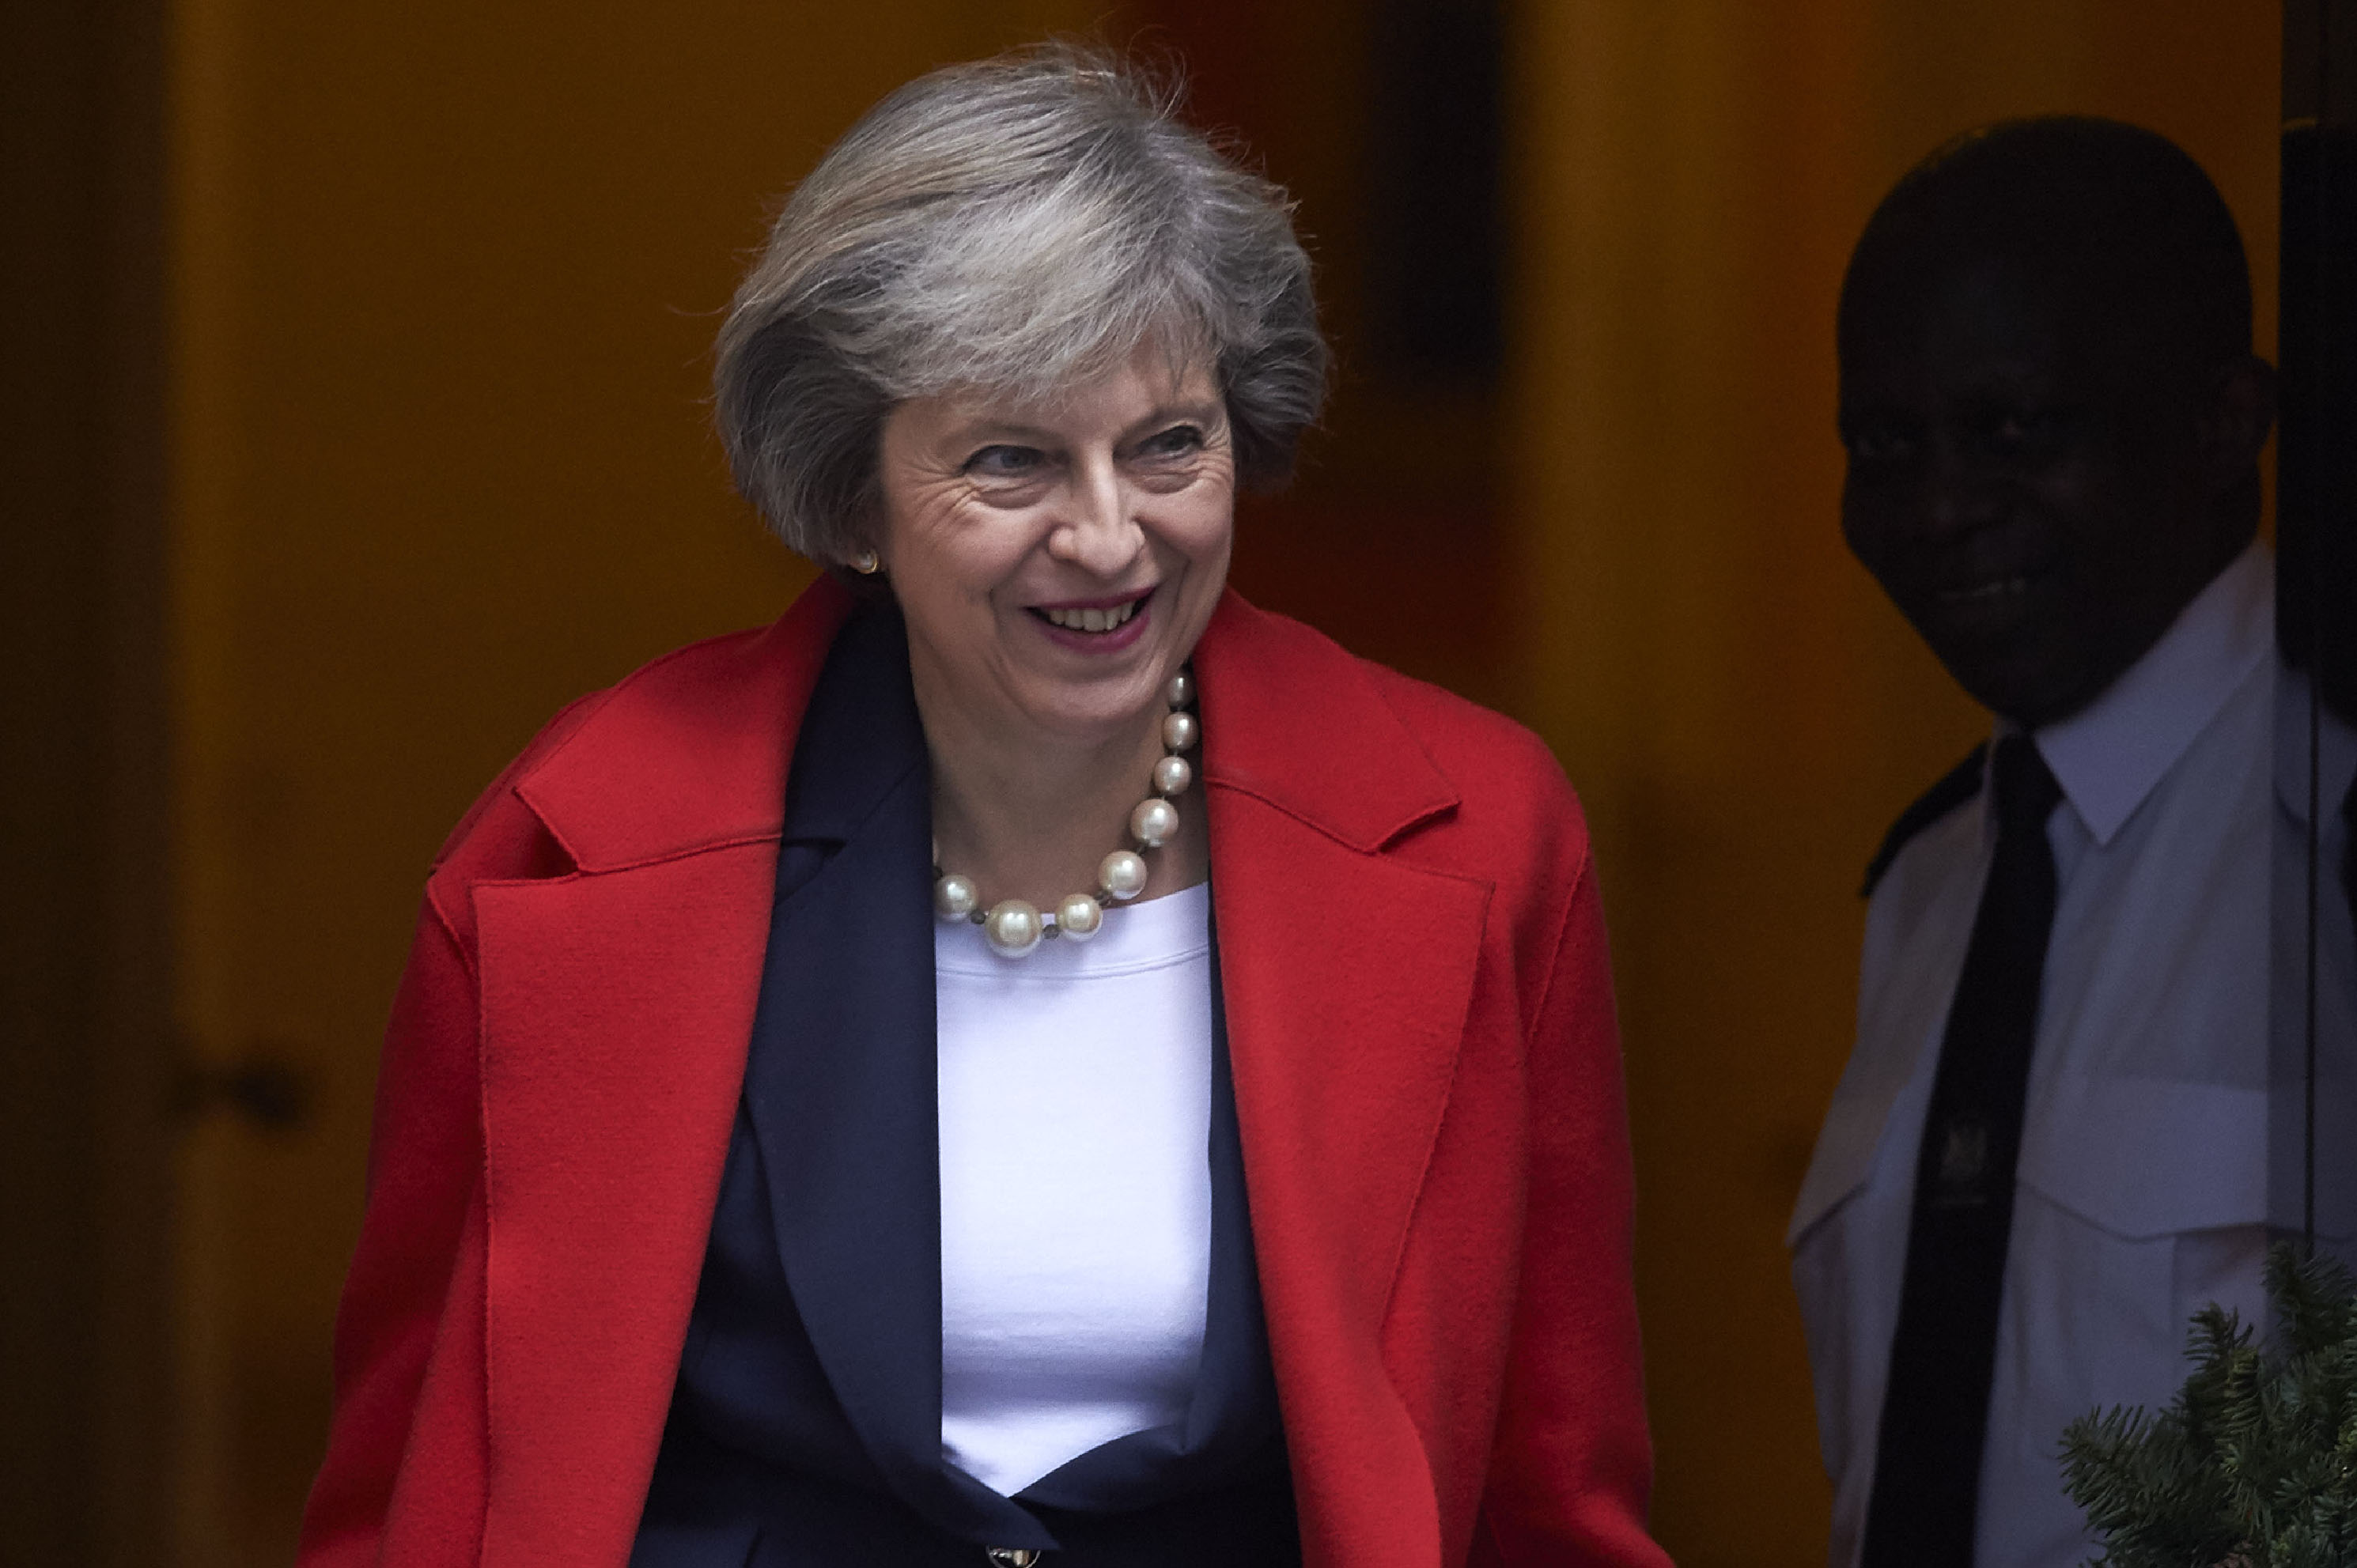 British Prime Minister Theresa May leaves 10 Downing Street in London on Dec. 14, 2016, ahead of the weekly Prime Minister's Questions at the House of Commons in London.